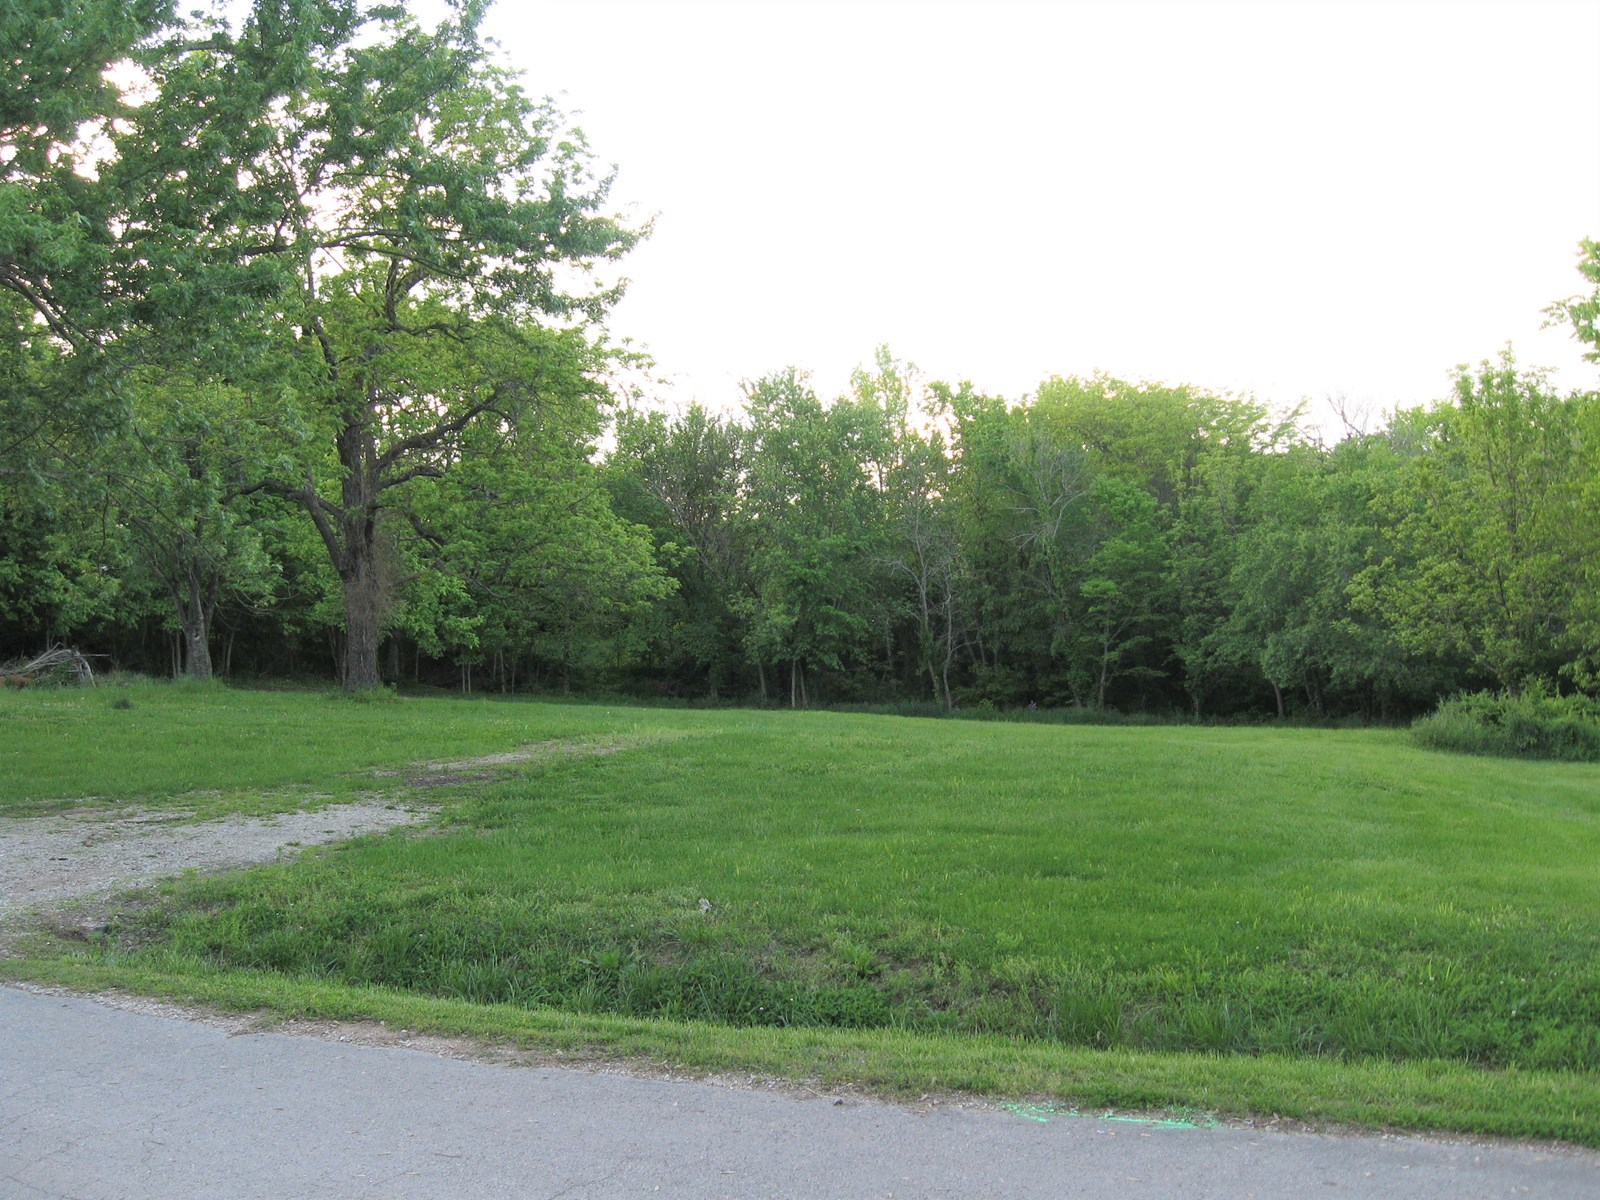 Potential income producing Vacant Lot available